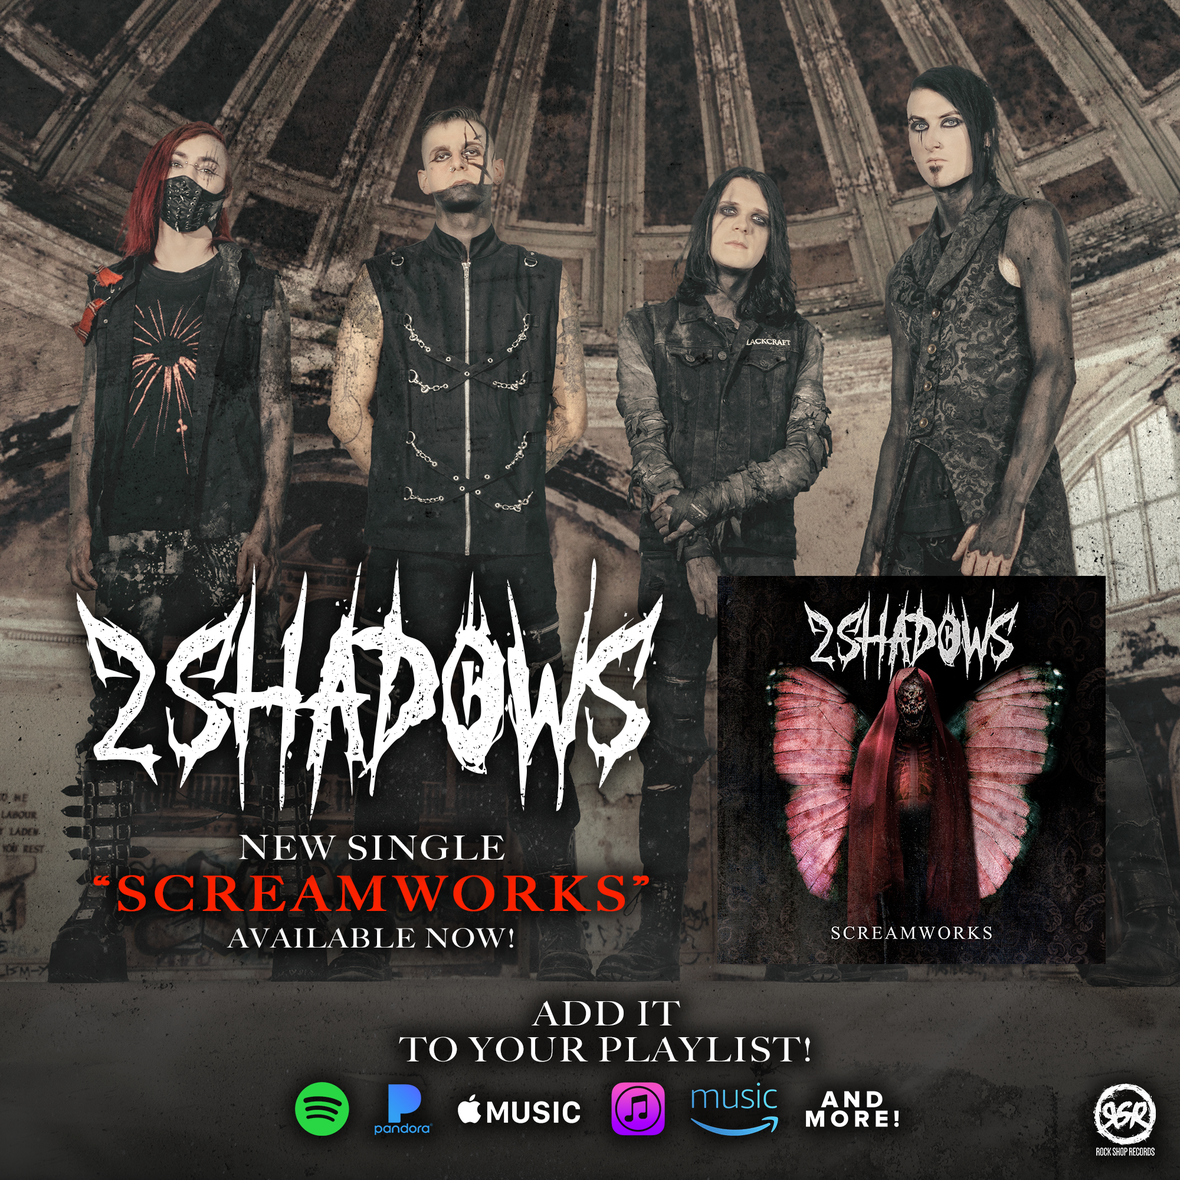 2 Shad Screamworks Publicity Squared 2